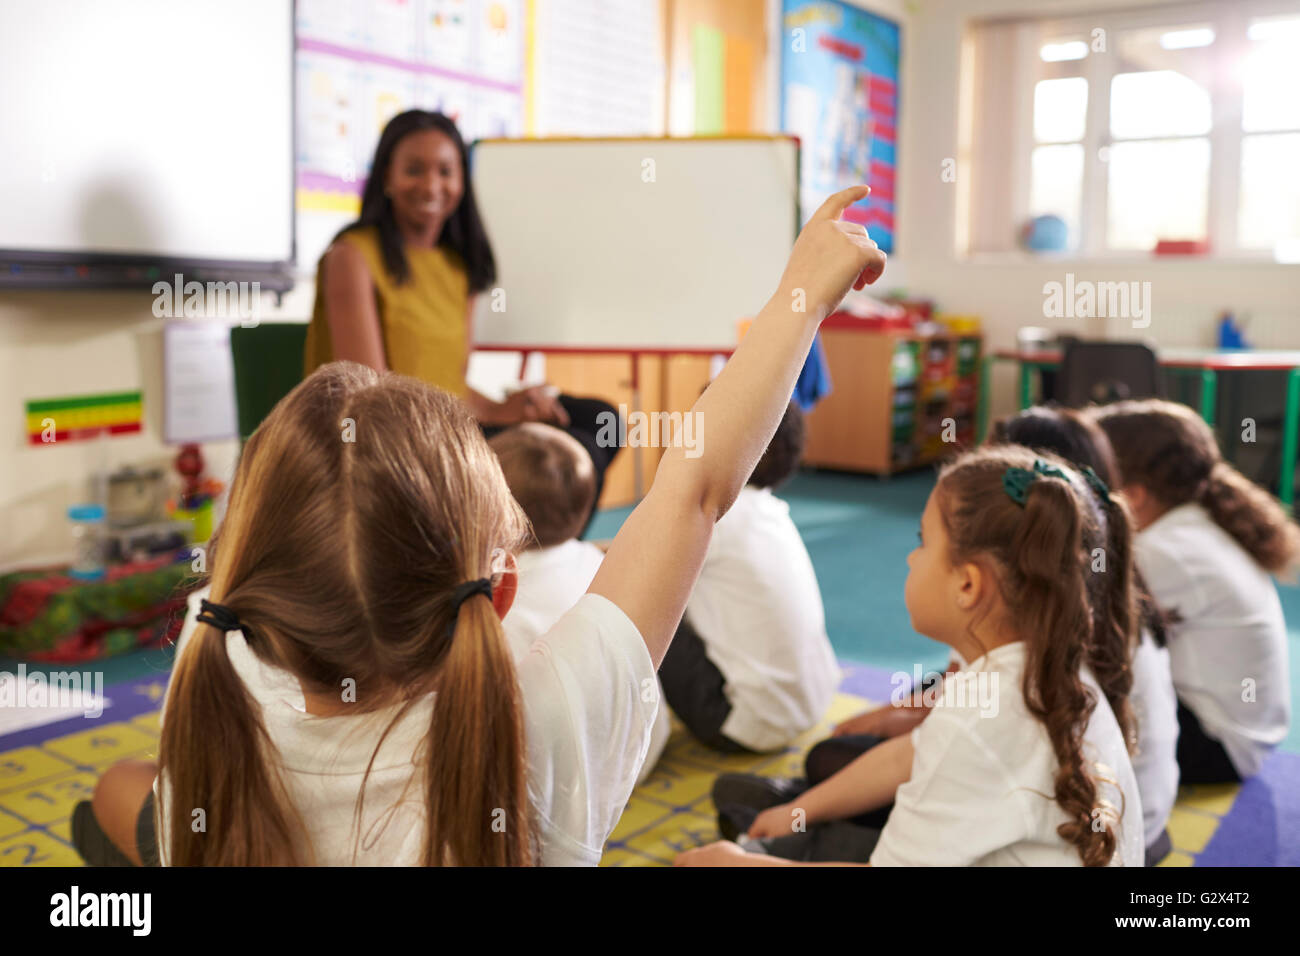 Teacher With Whiteboard In Elementary School Maths Class - Stock Image